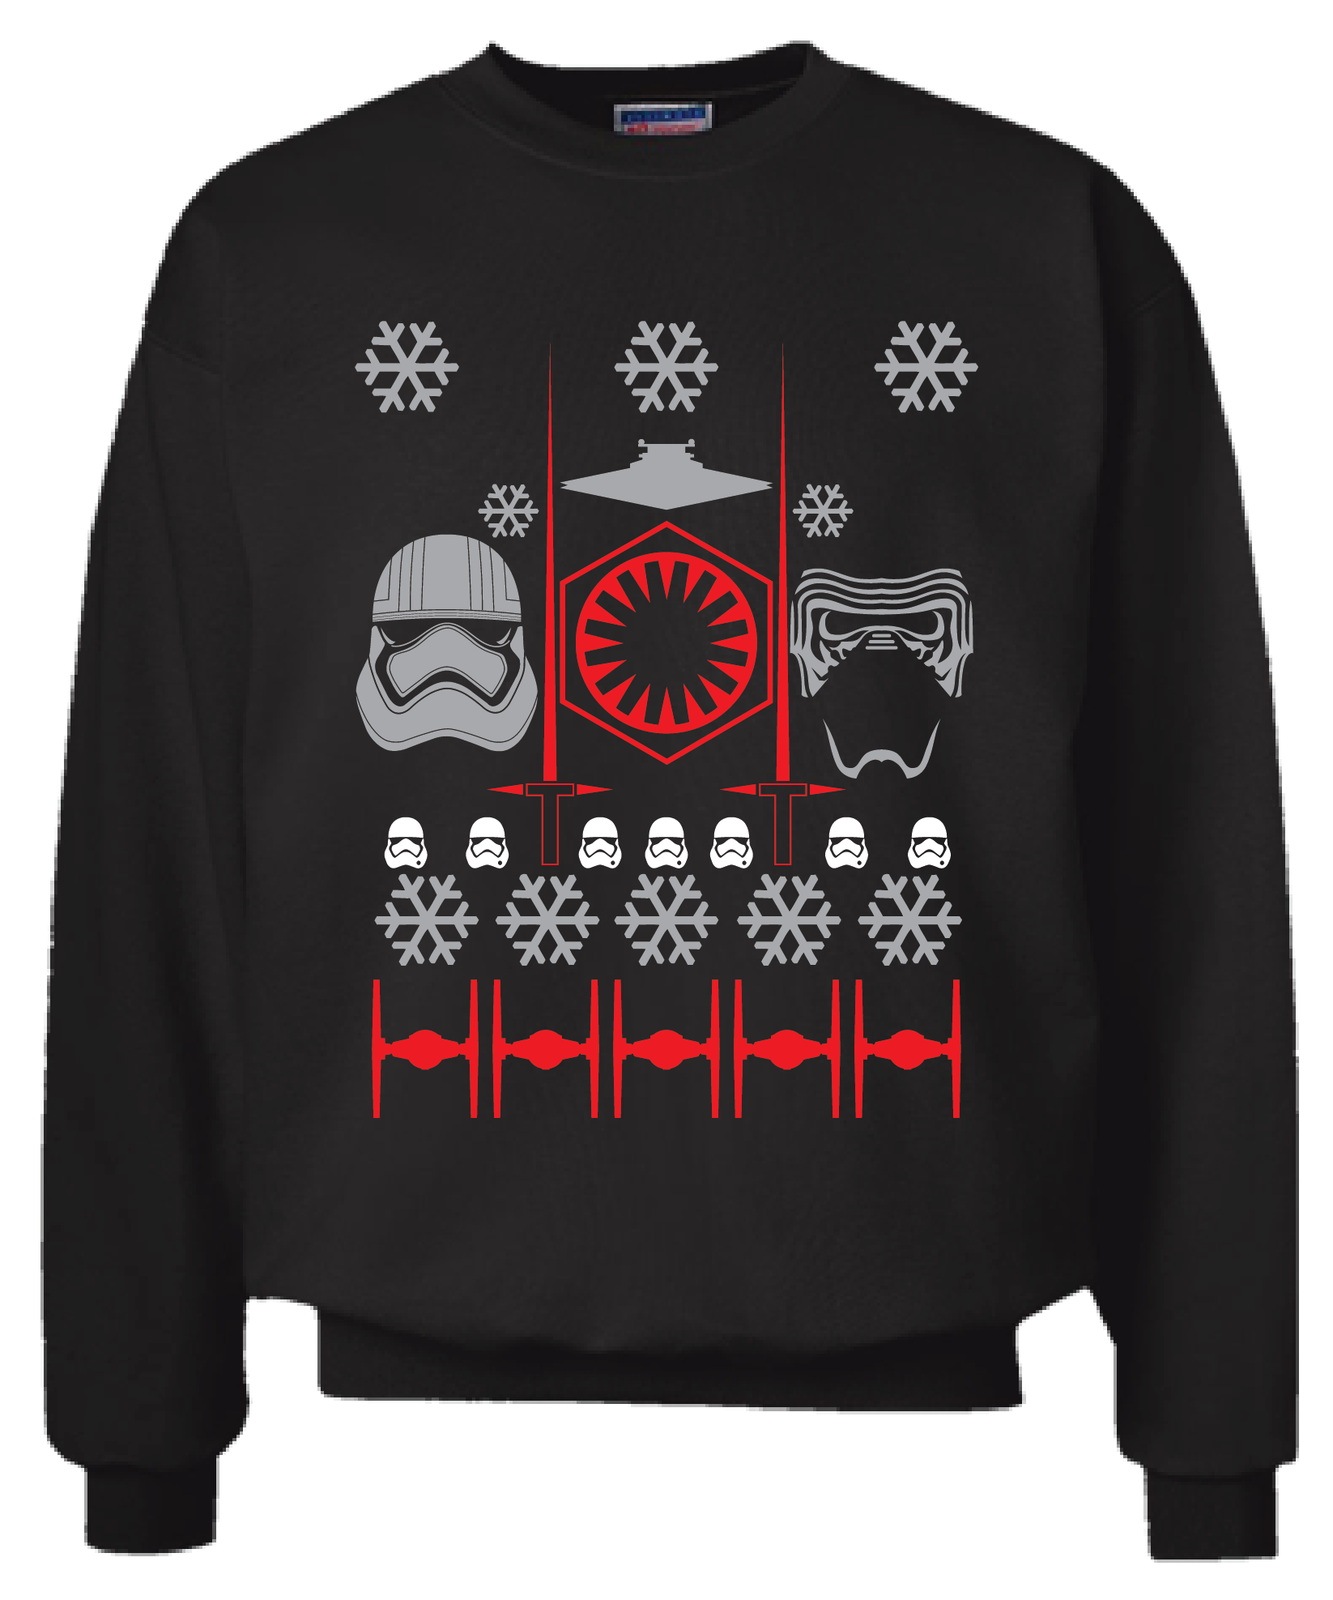 First order christmas sweater